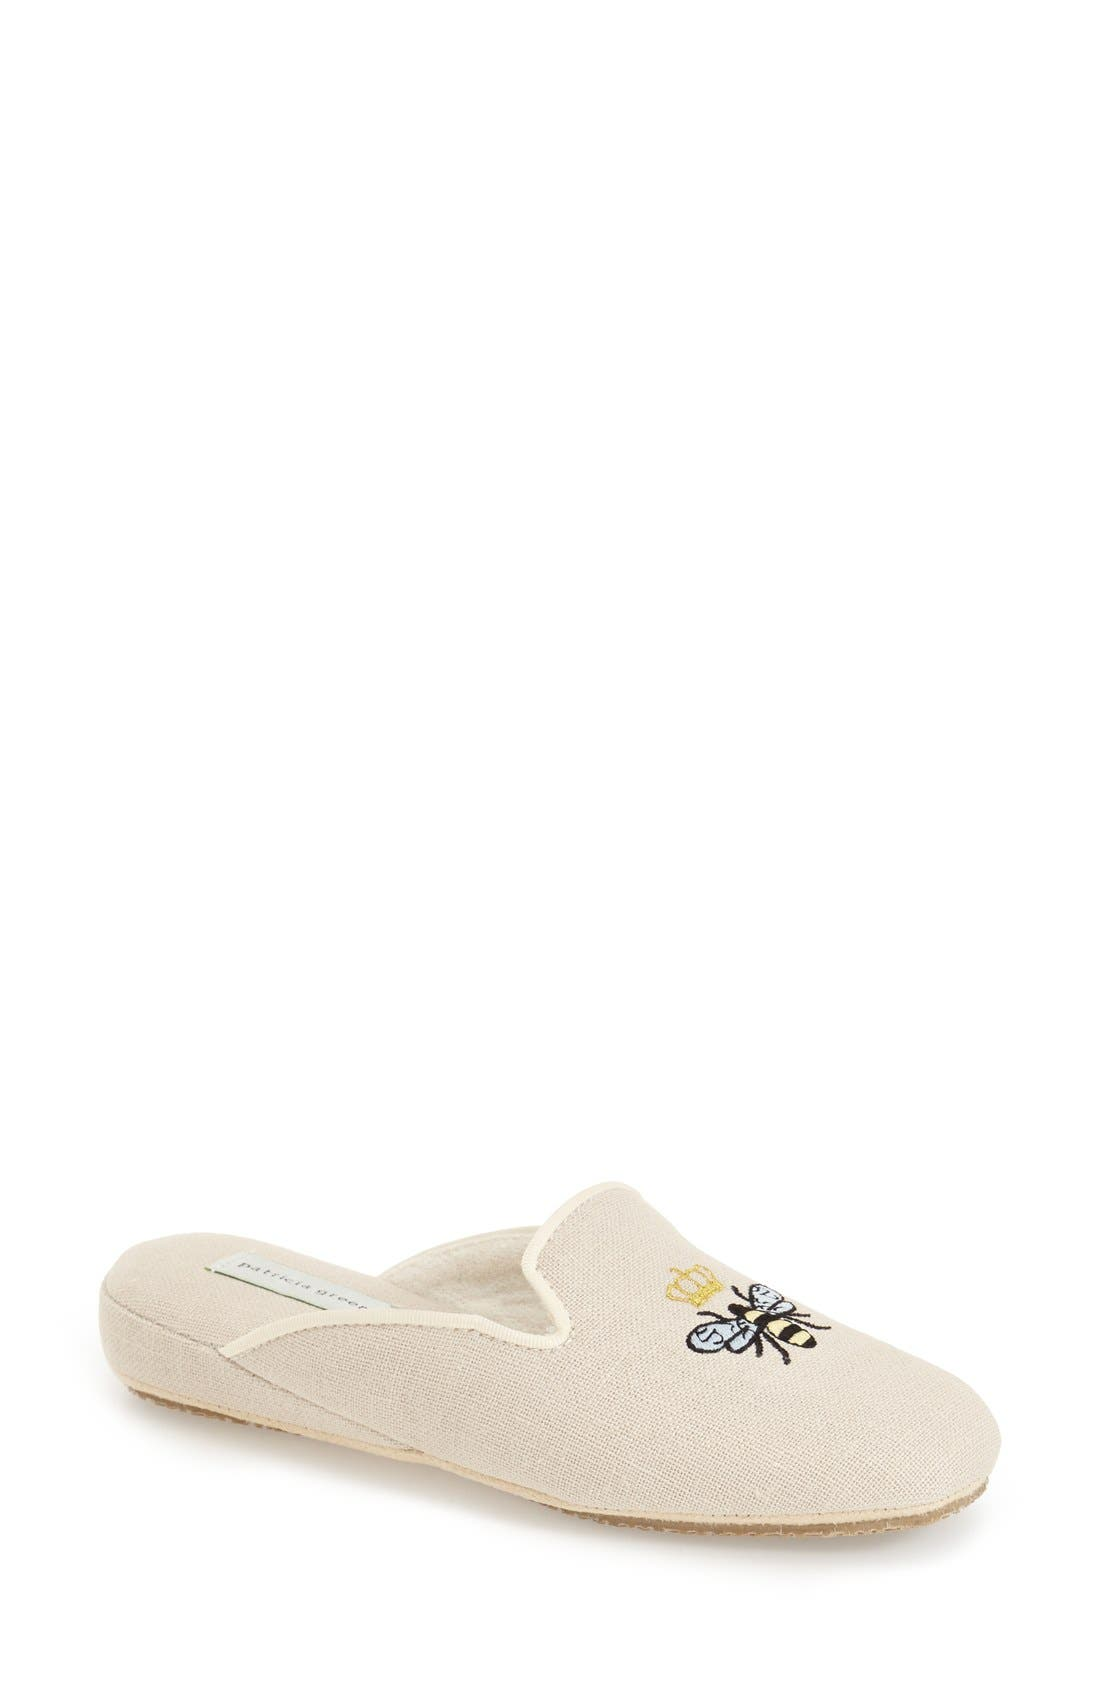 PATRICIA GREEN, 'Queen Bee' Embroidered Slipper, Main thumbnail 1, color, NATURAL